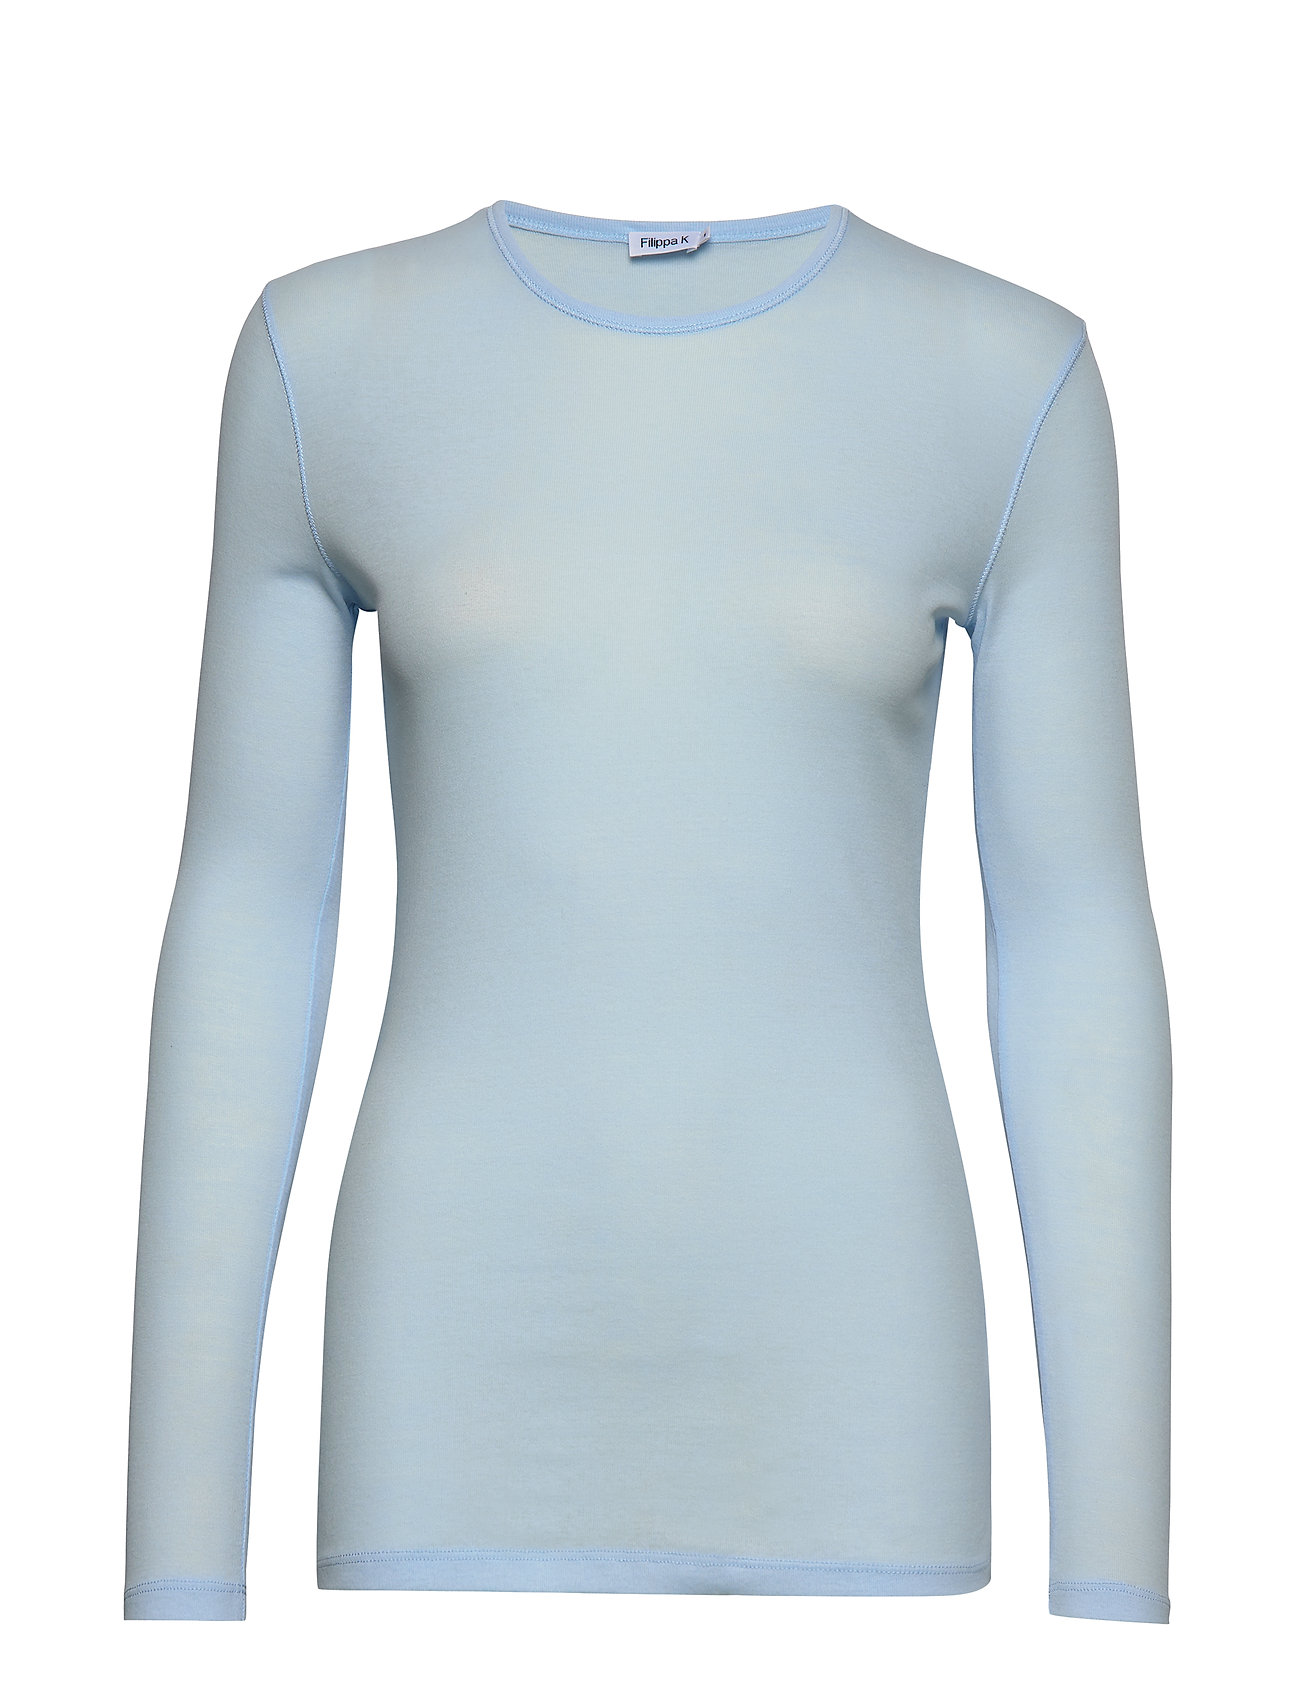 Filippa K Eloise Top - ATLANTIC B